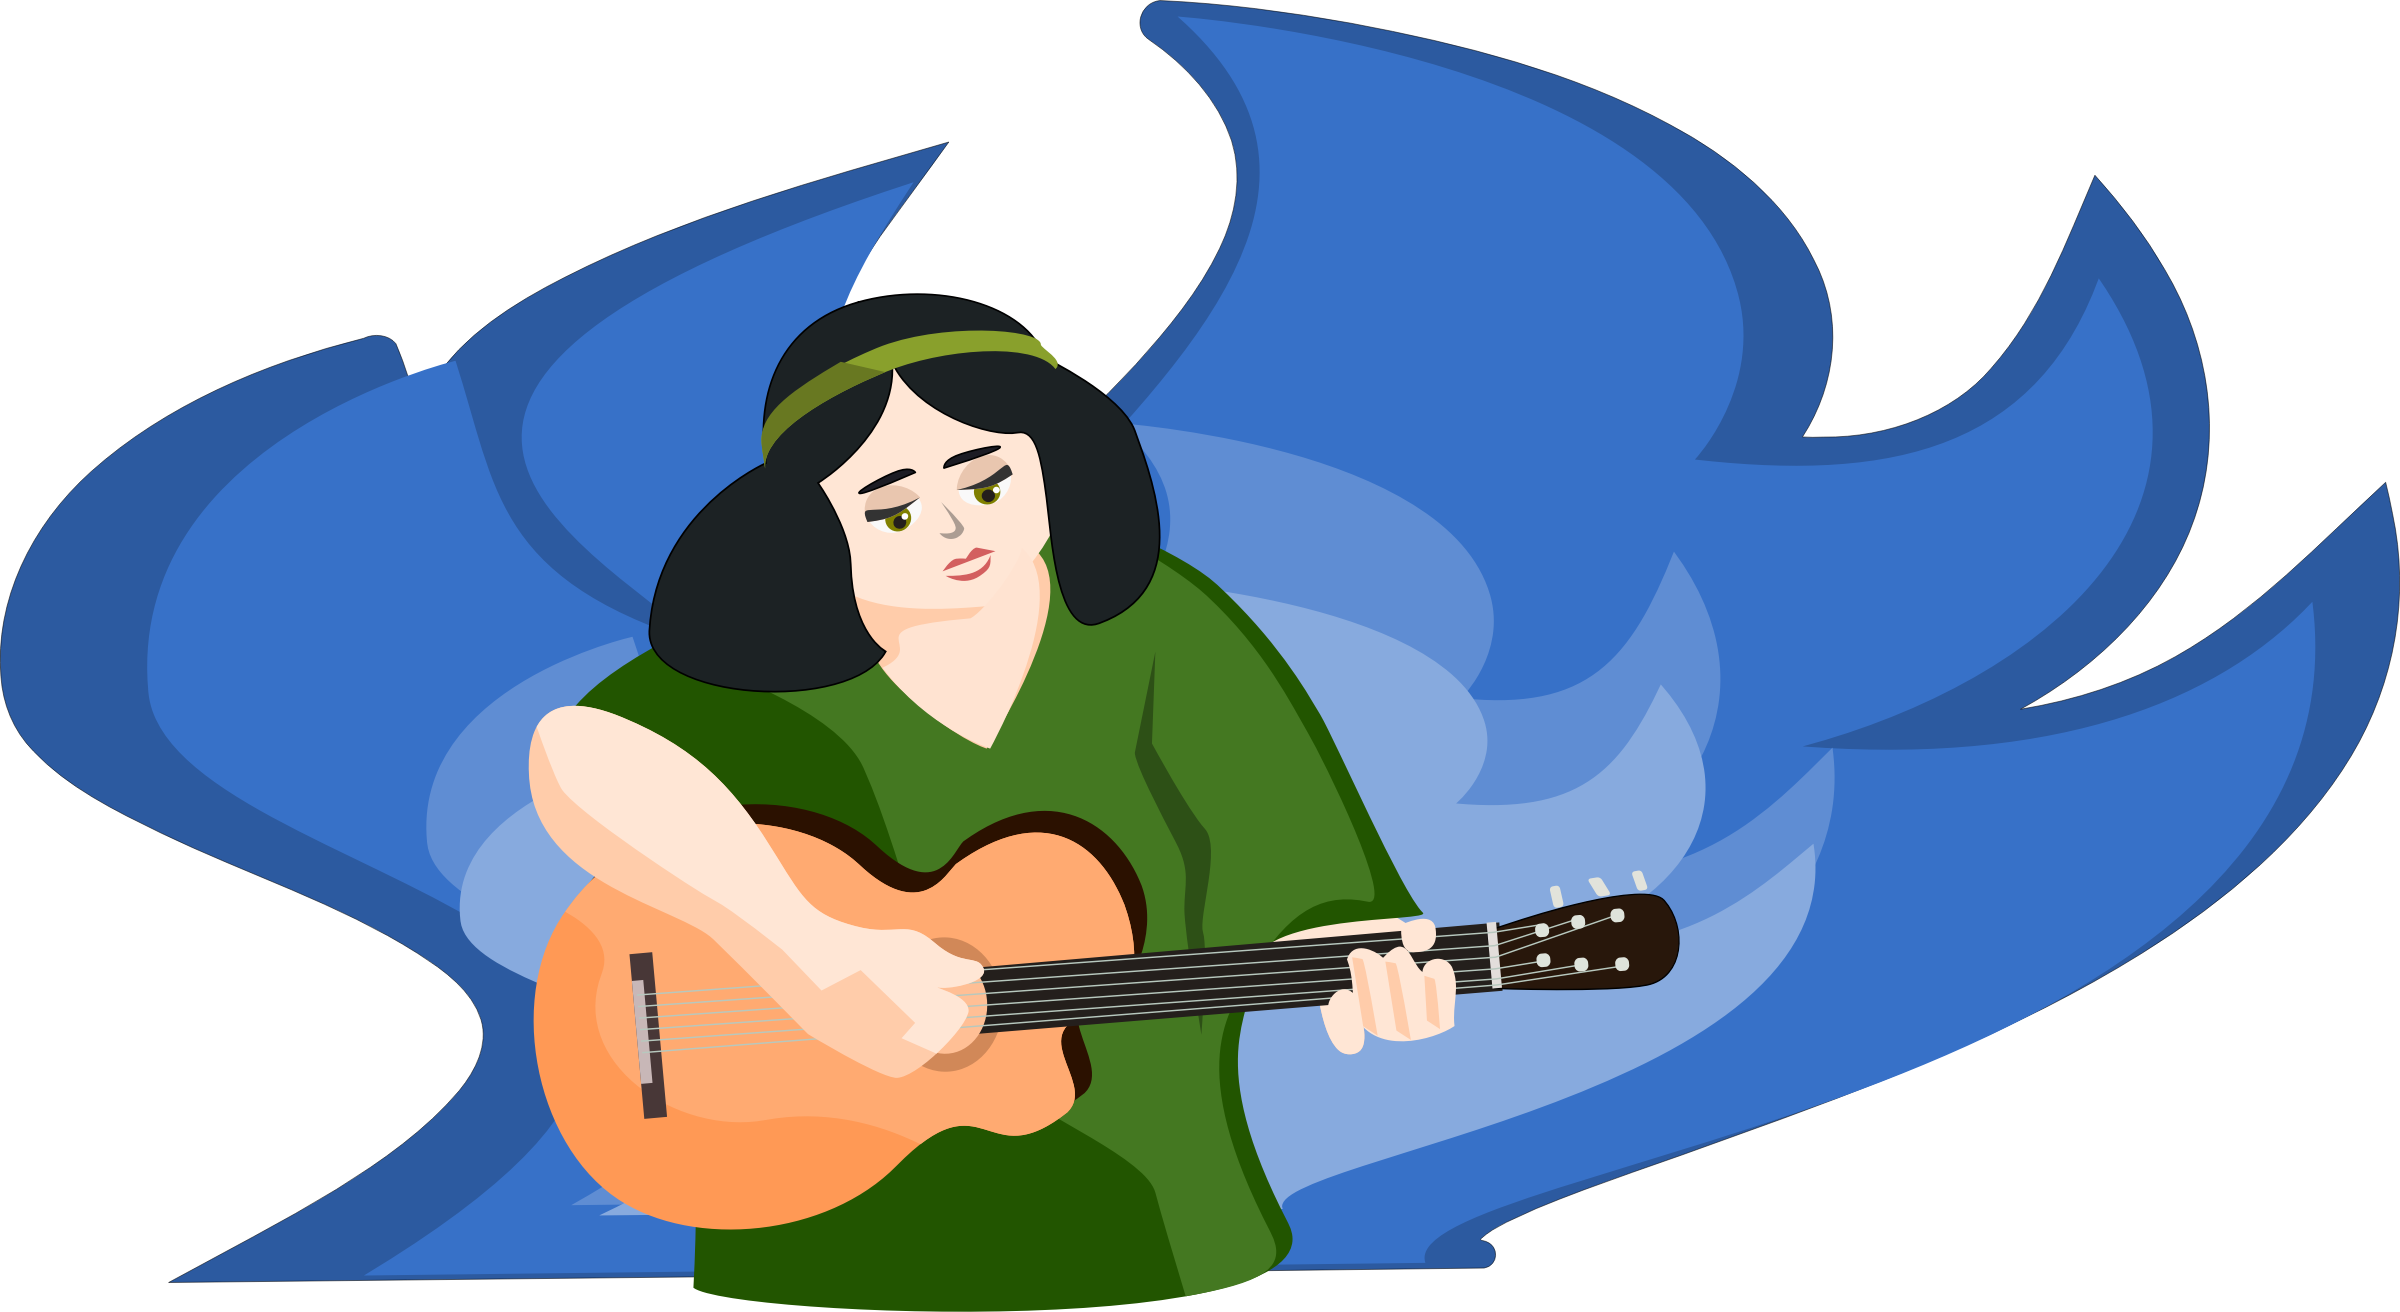 bard woman playing gitar by OlKu